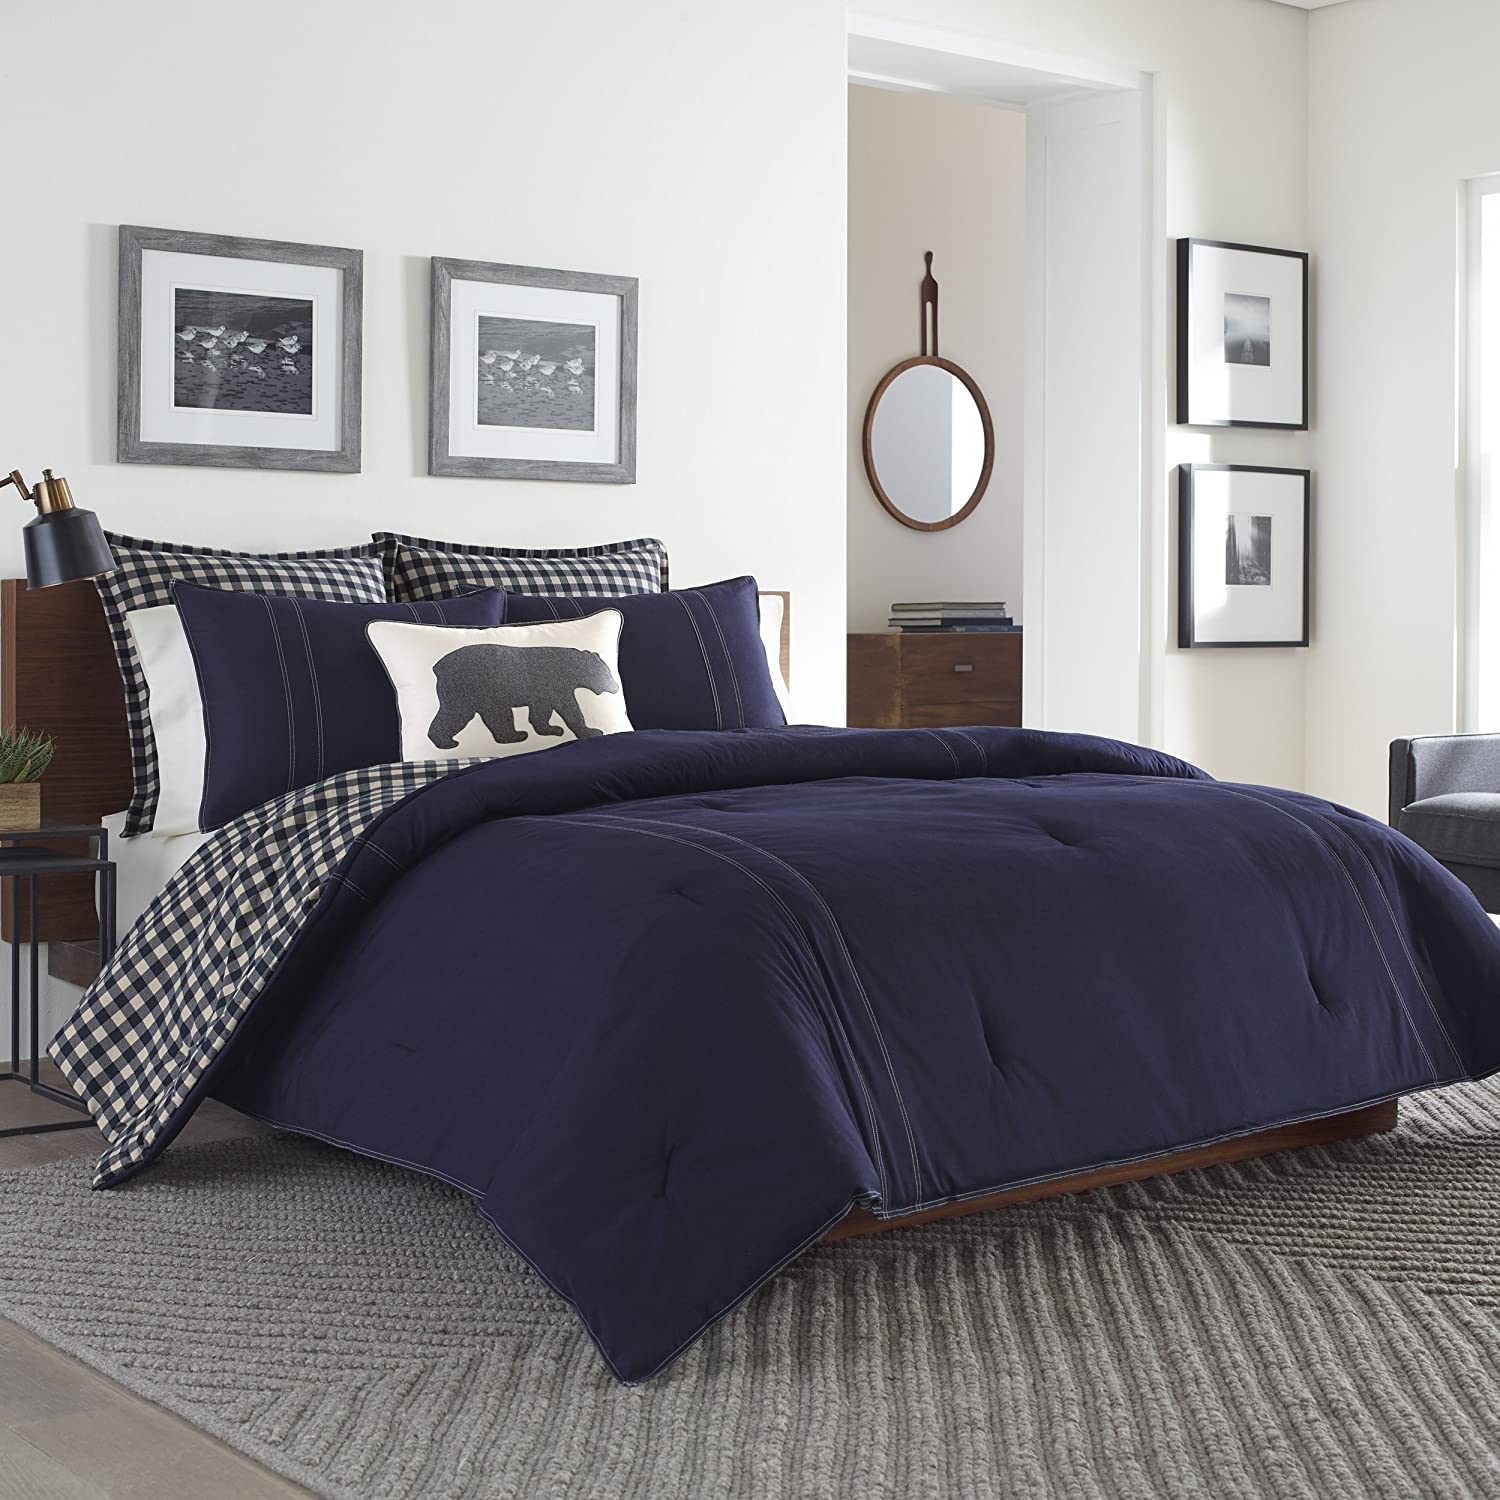 Navy Revman International Eddie Bauer 216693 Kingston Reversible Comforter Set Full//Queen